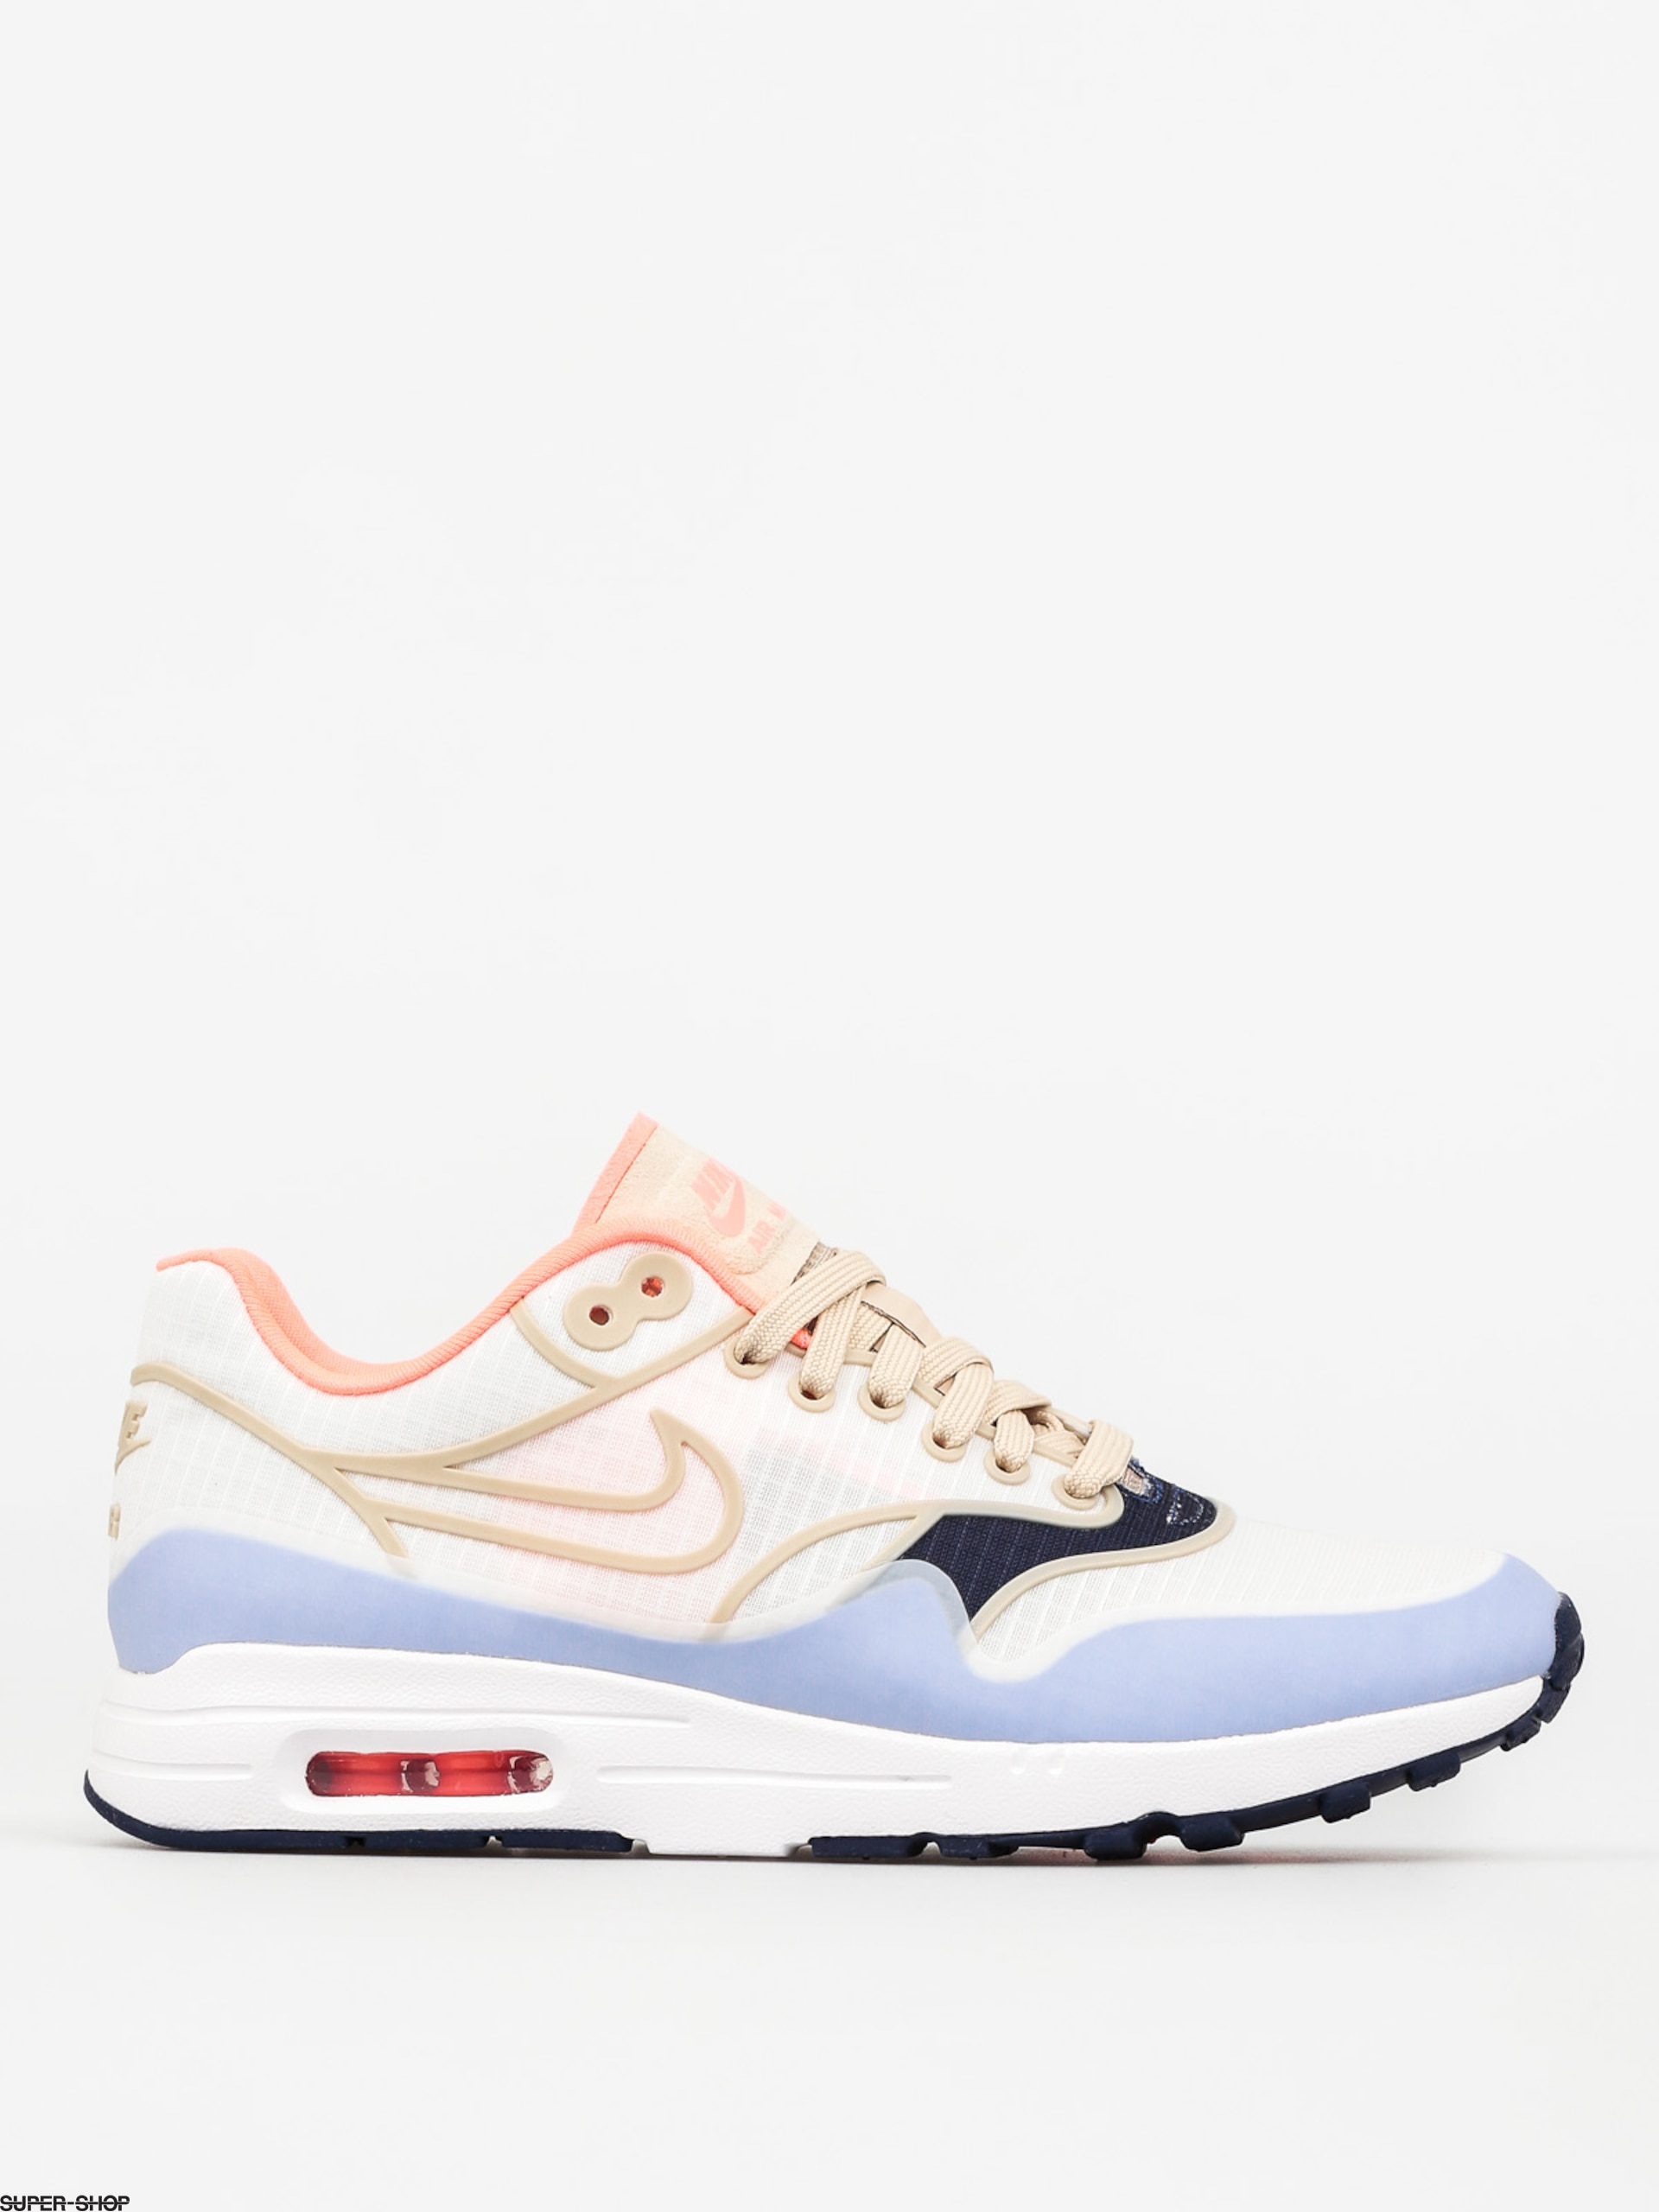 Nike Shoes Air Max 1 Wmn (Ultra 2.0 Si sail/oatmeal white lava glow)